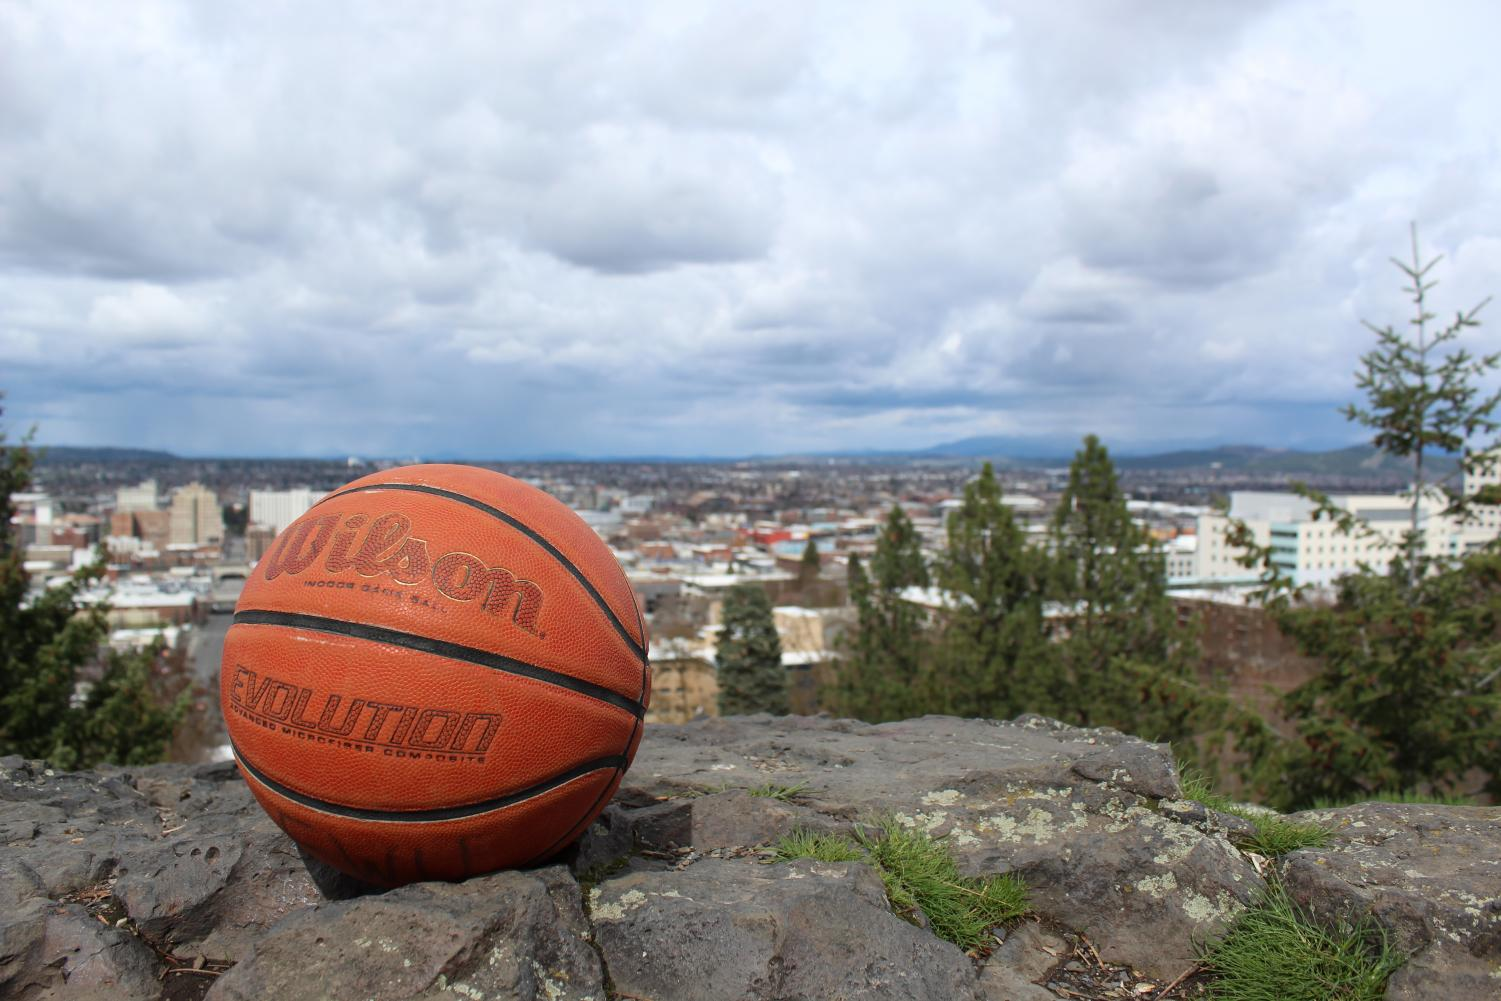 Basketball is a part of Spokane's culture. Successful programs at Gonzaga and Hoopfest—the world's largest 3-on-3 tournament fuel the city's love for the game.